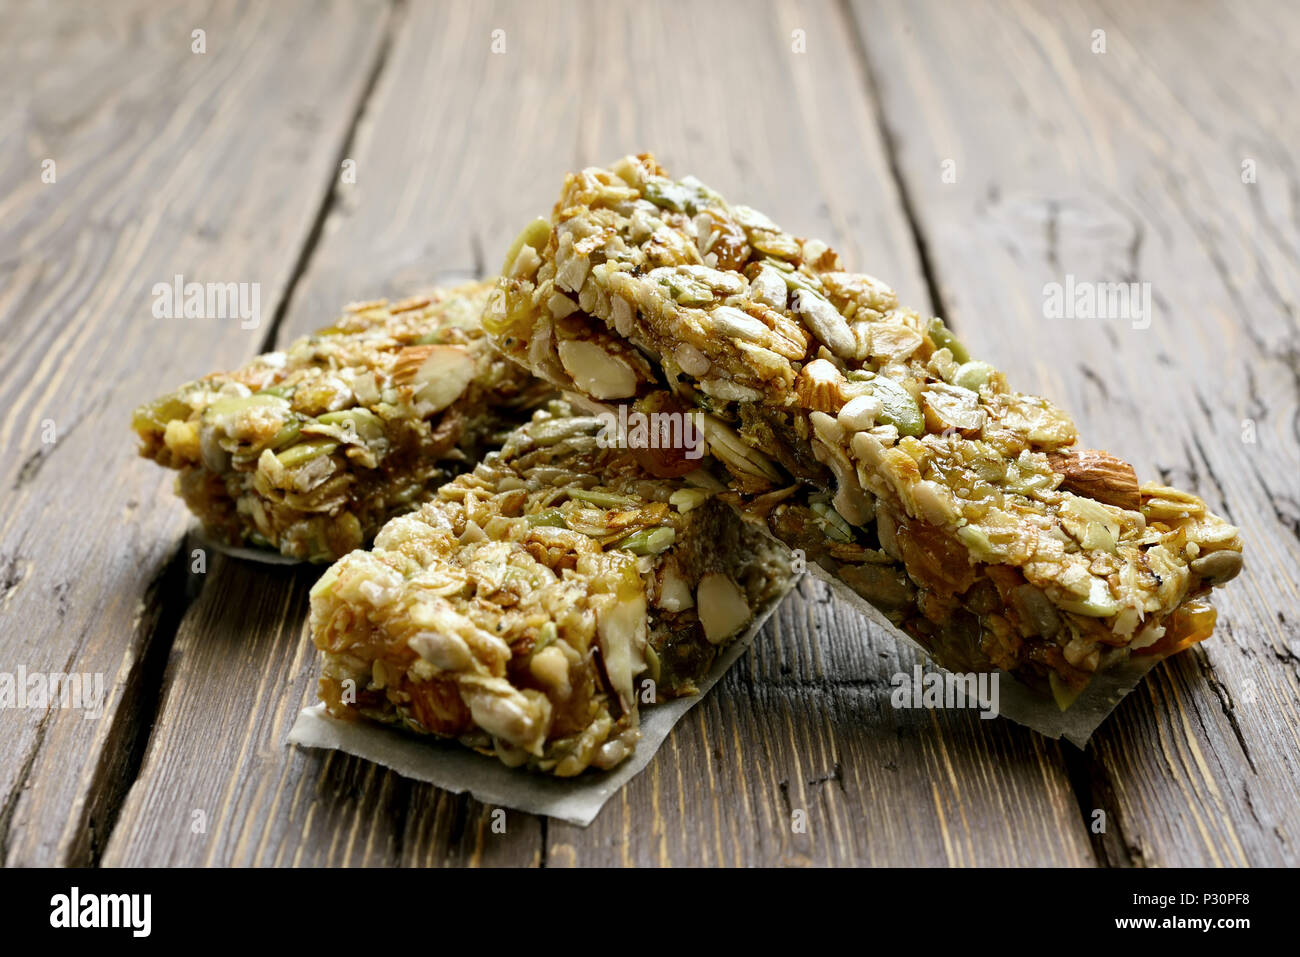 Healthy energy snack granola bars on wooden background. Close up view - Stock Image